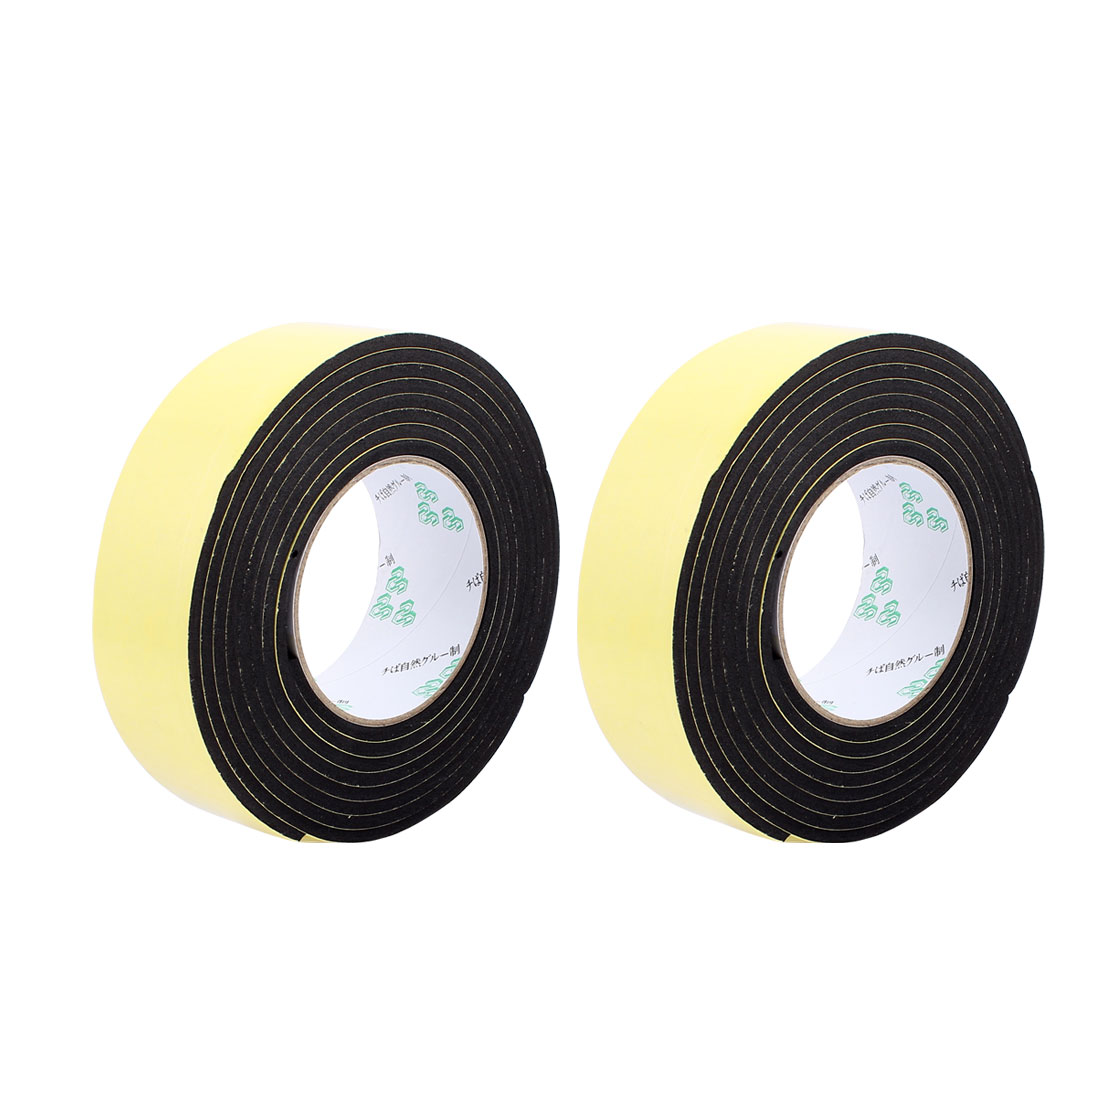 2Pcs 4.5CM Width 3 Meters Length 4MM Thick Single Sided Sealing Shockproof Sponge Tape